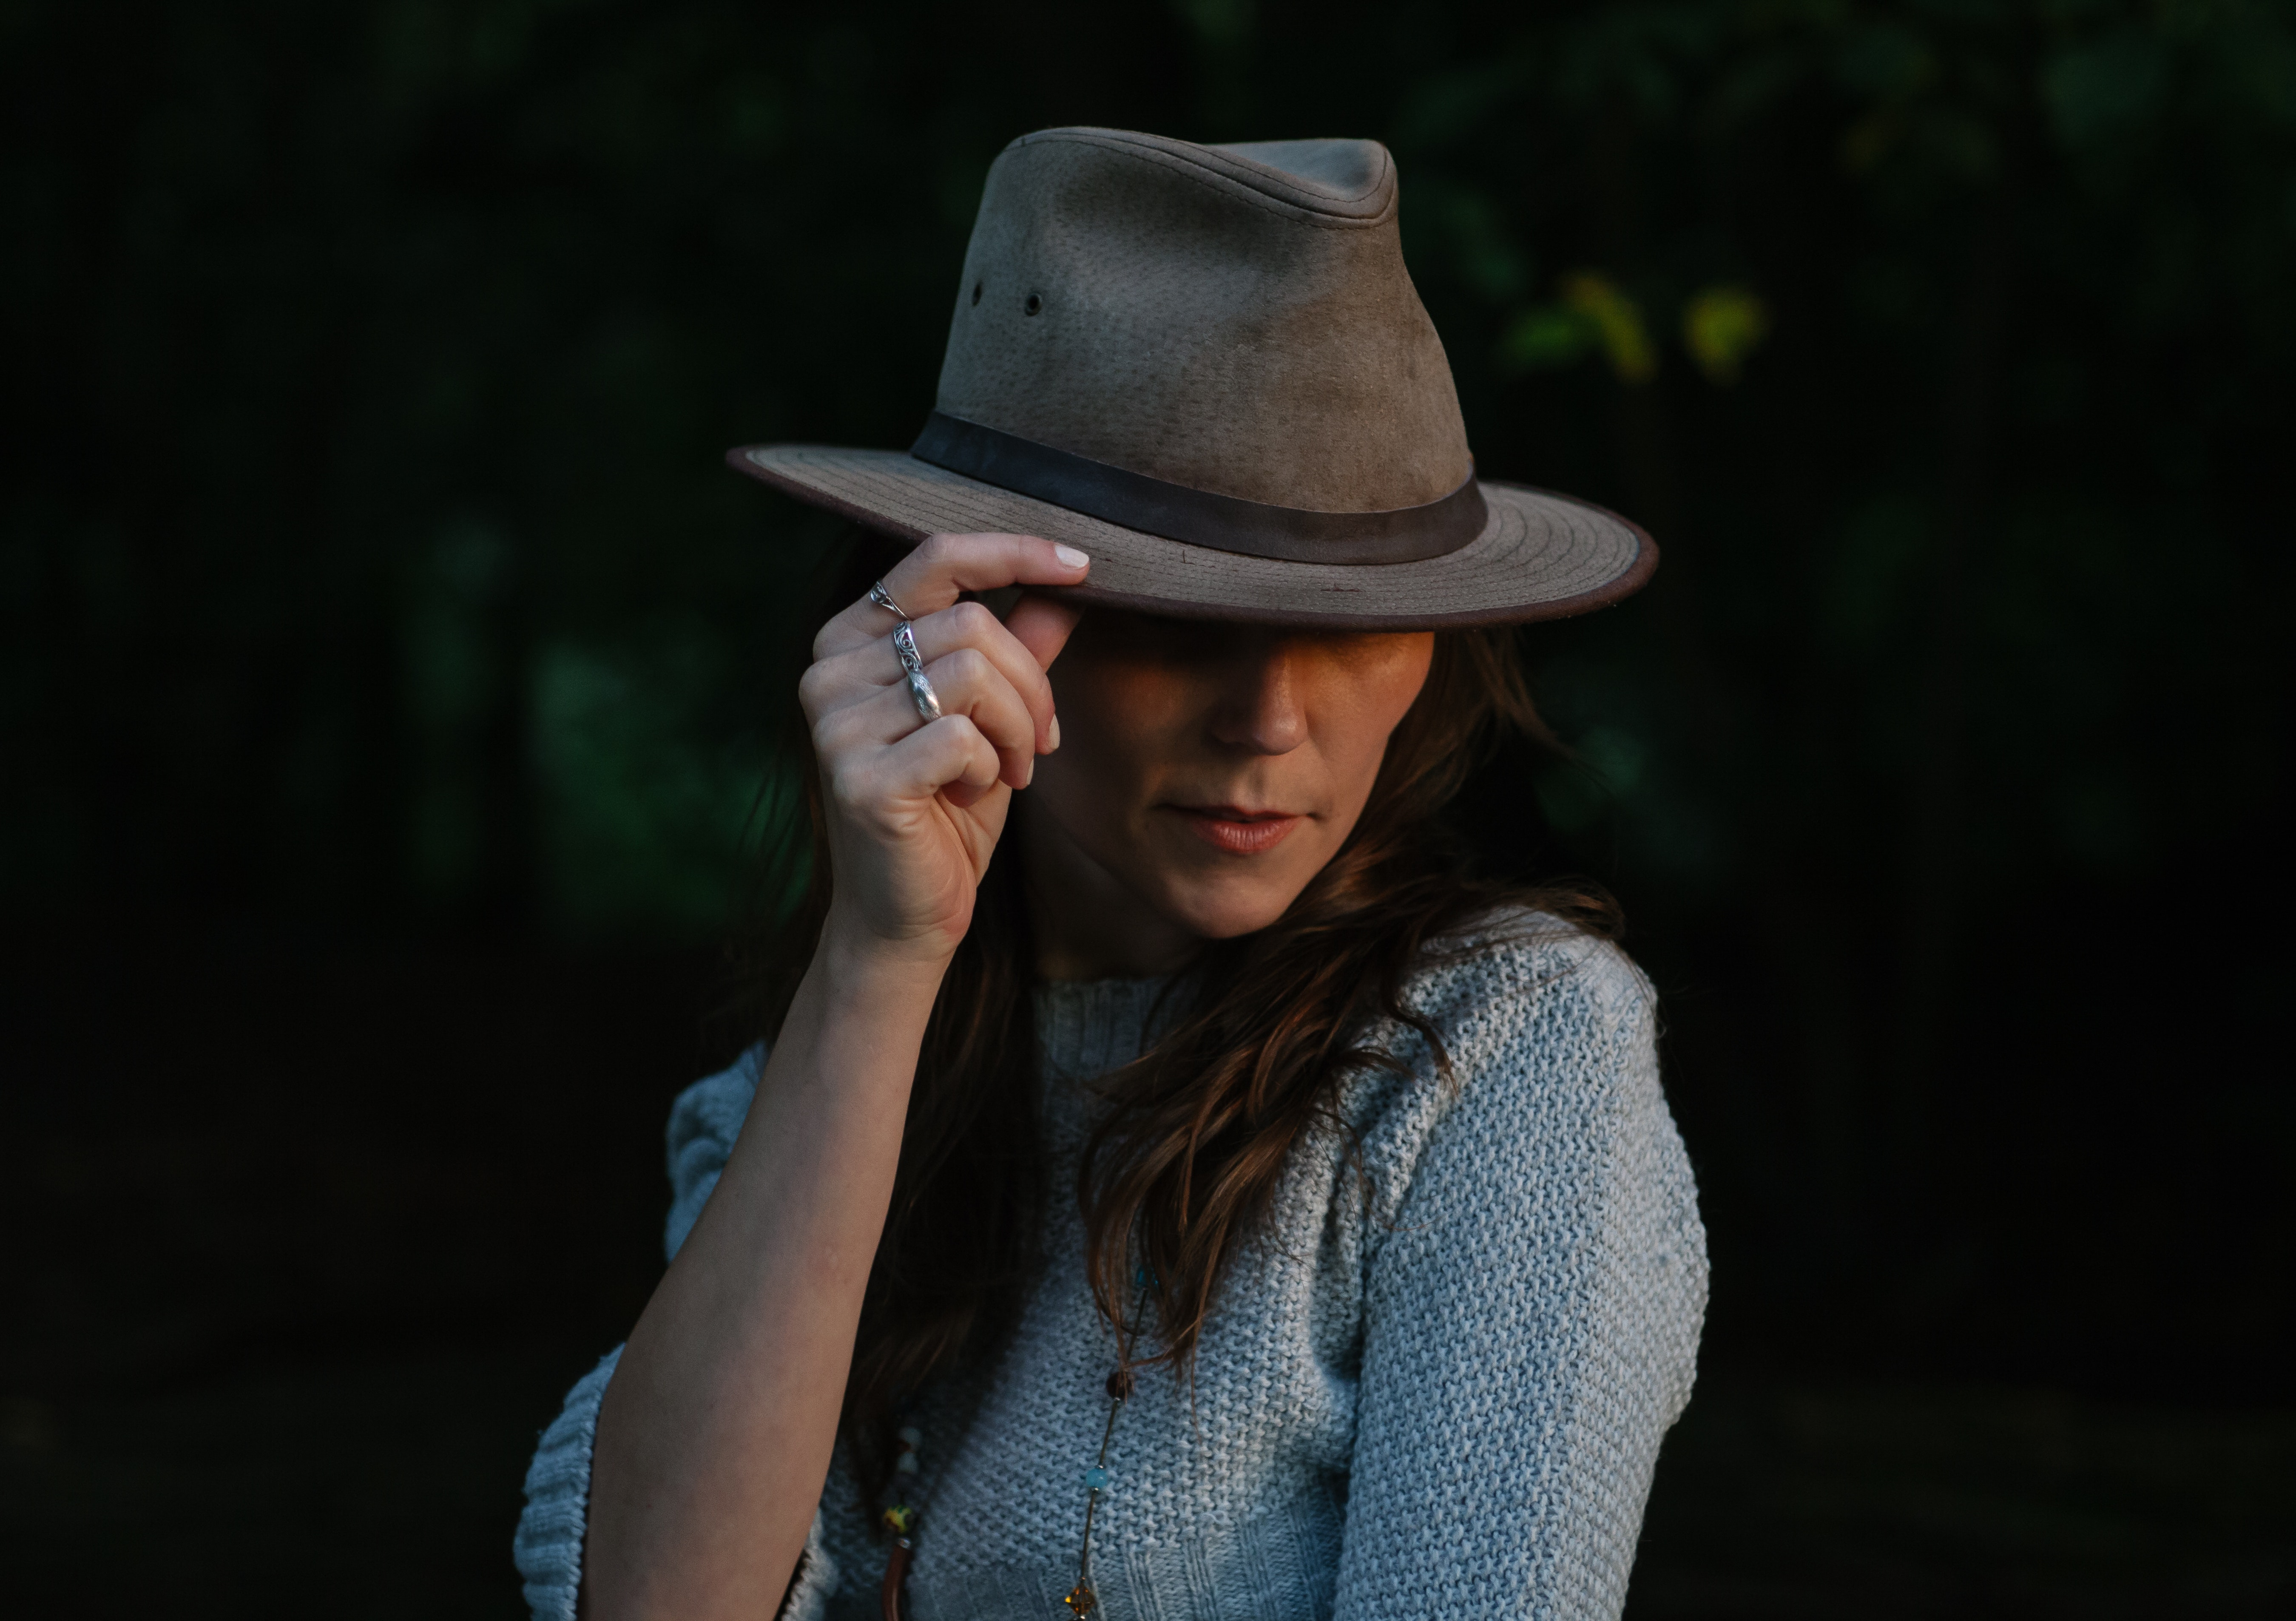 Woman in Brown Fedora Hat · Free Stock Photo 19ebe6c9970